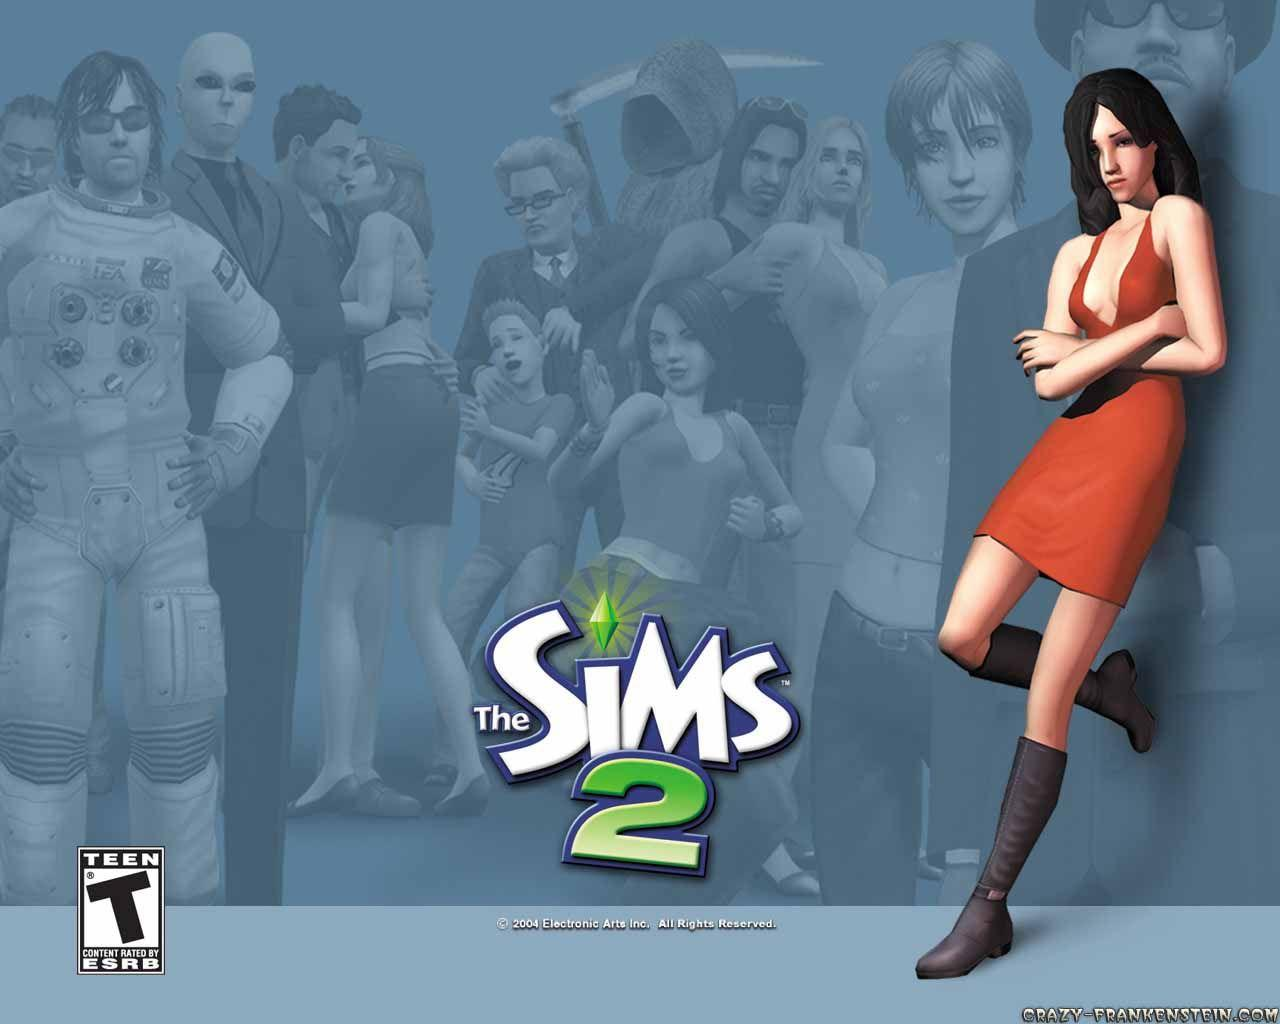 The Sims 2 - Game wallpapers - Crazy Frankenstein